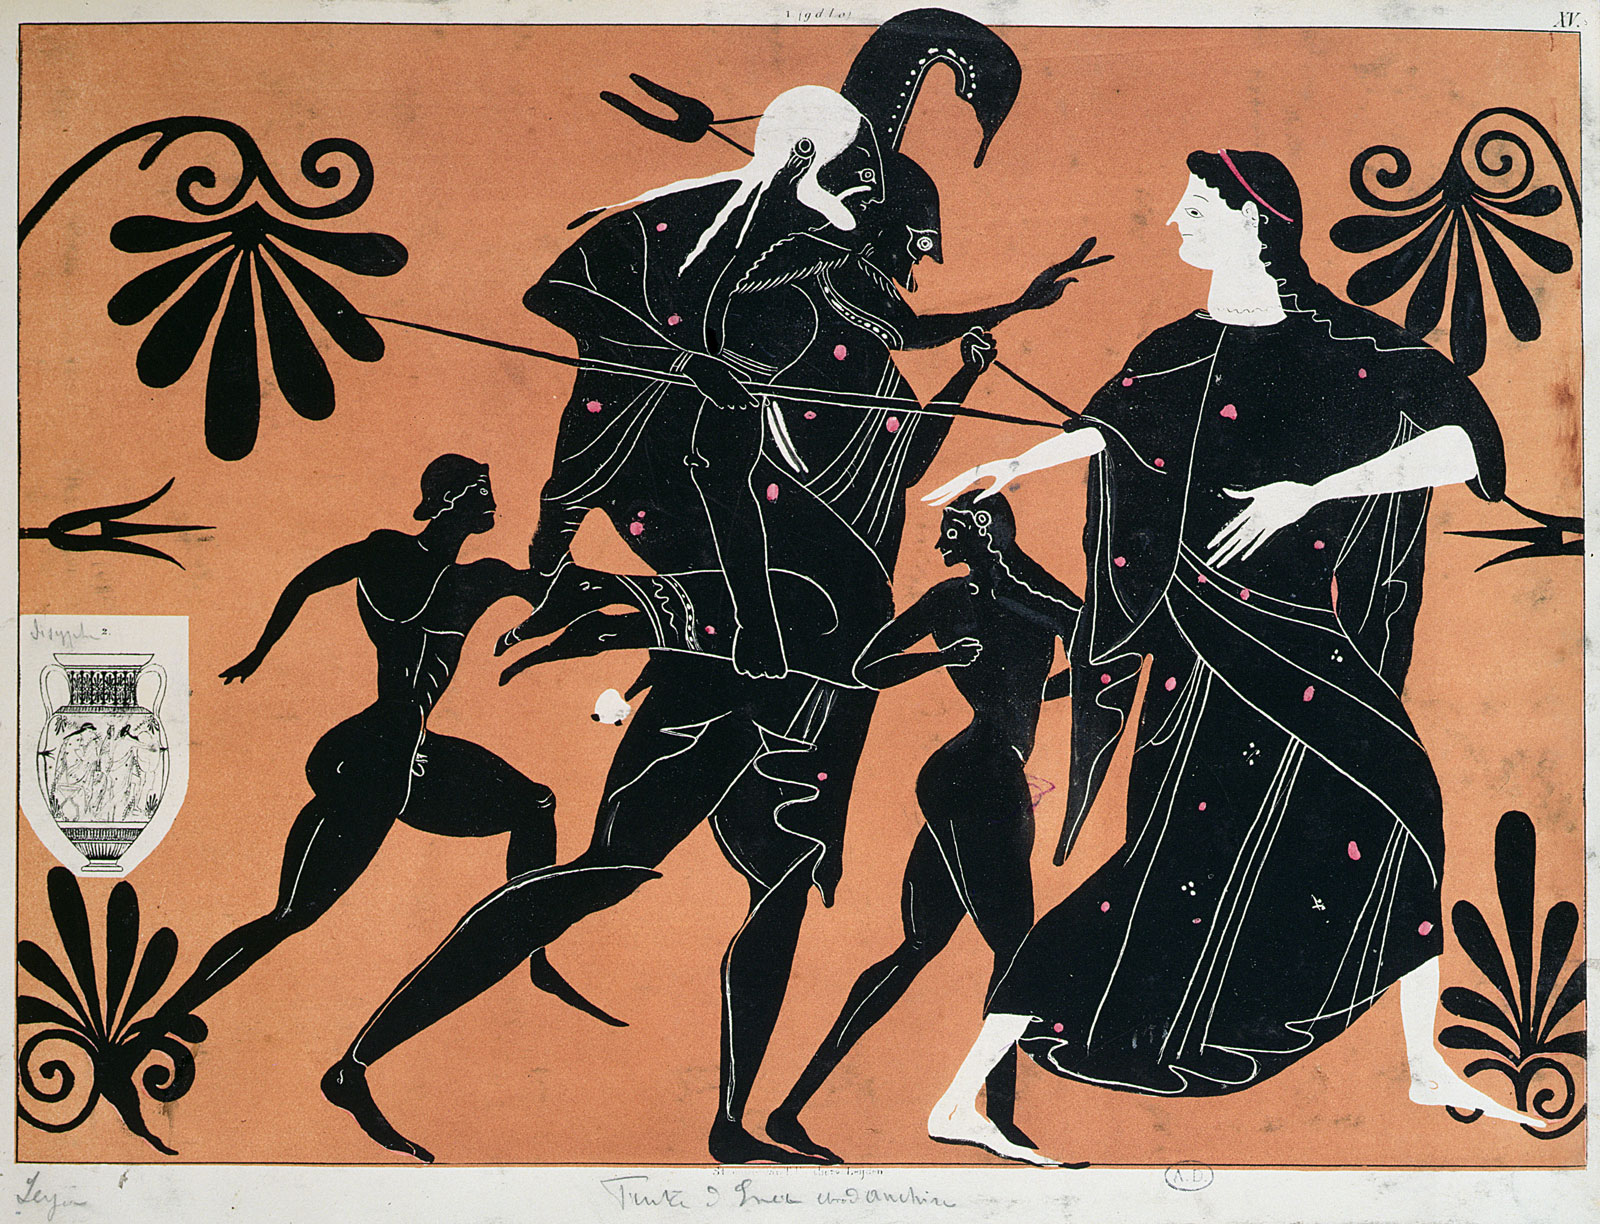 A lithograph reproduction of a scene from an ancient Greek vase depicting the flight from Troy, with Aeneas carrying his father Anchises on his back, nineteenth century